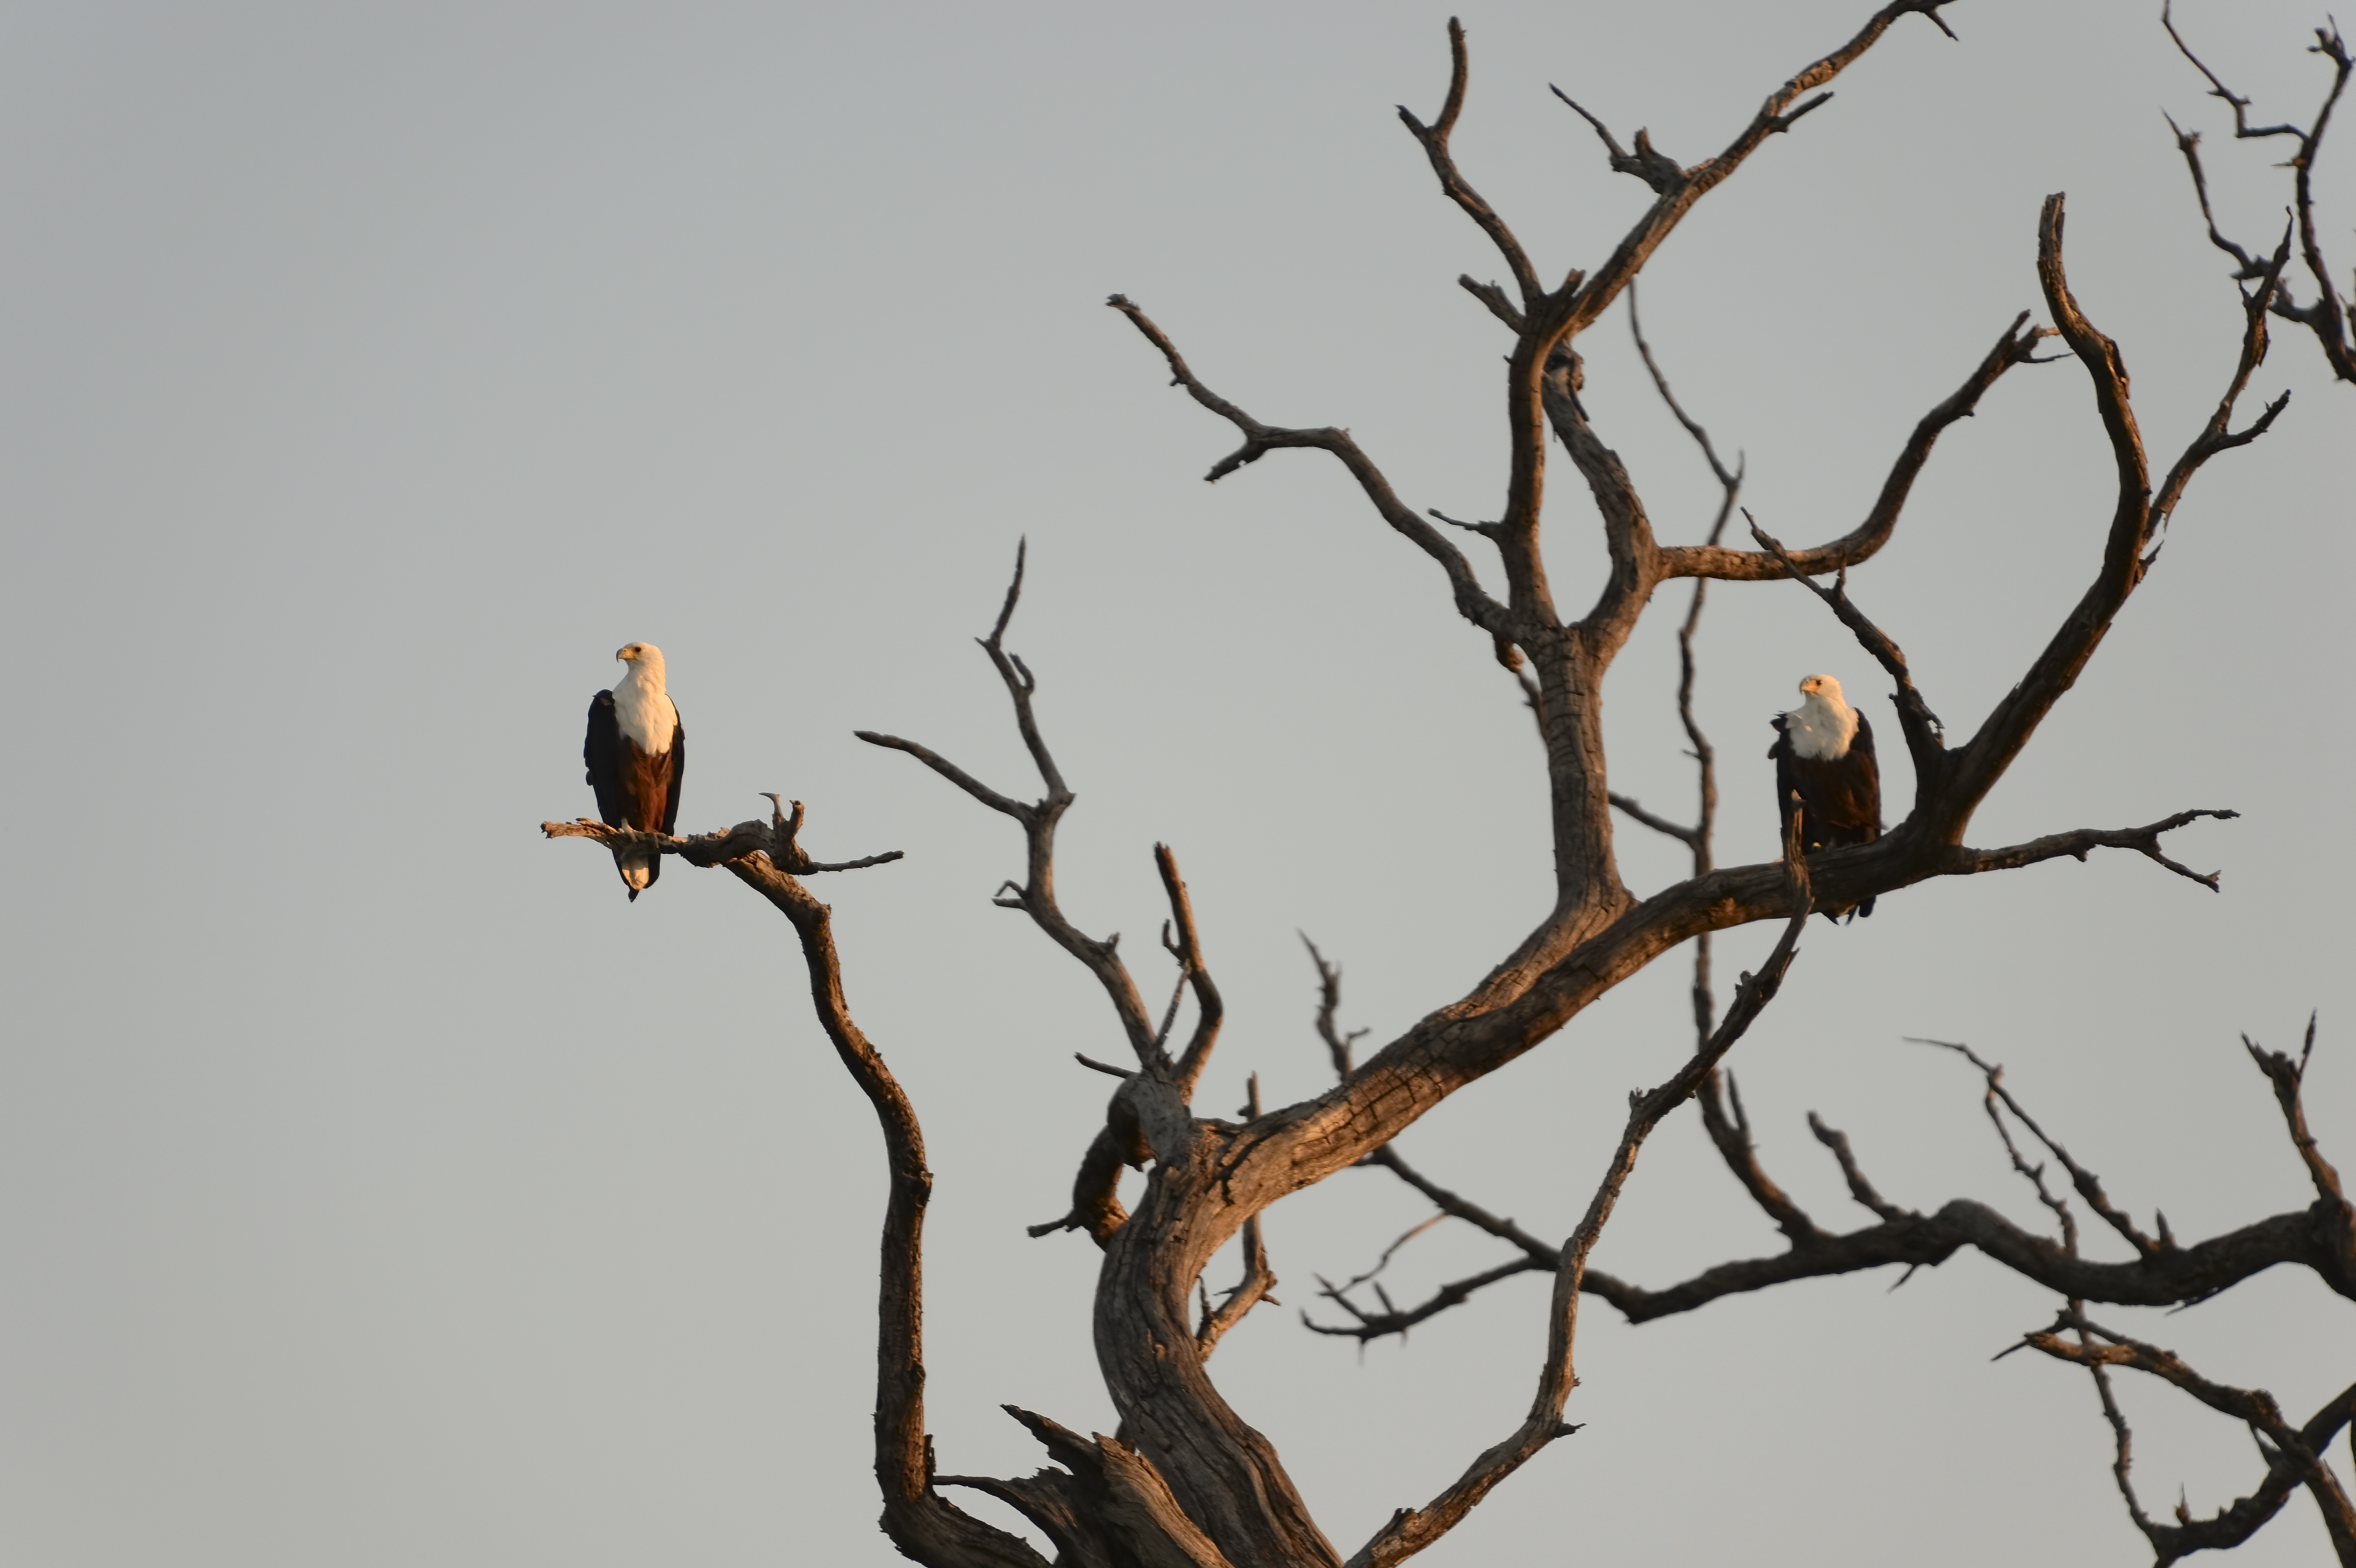 African Fish Eagle Fischadler